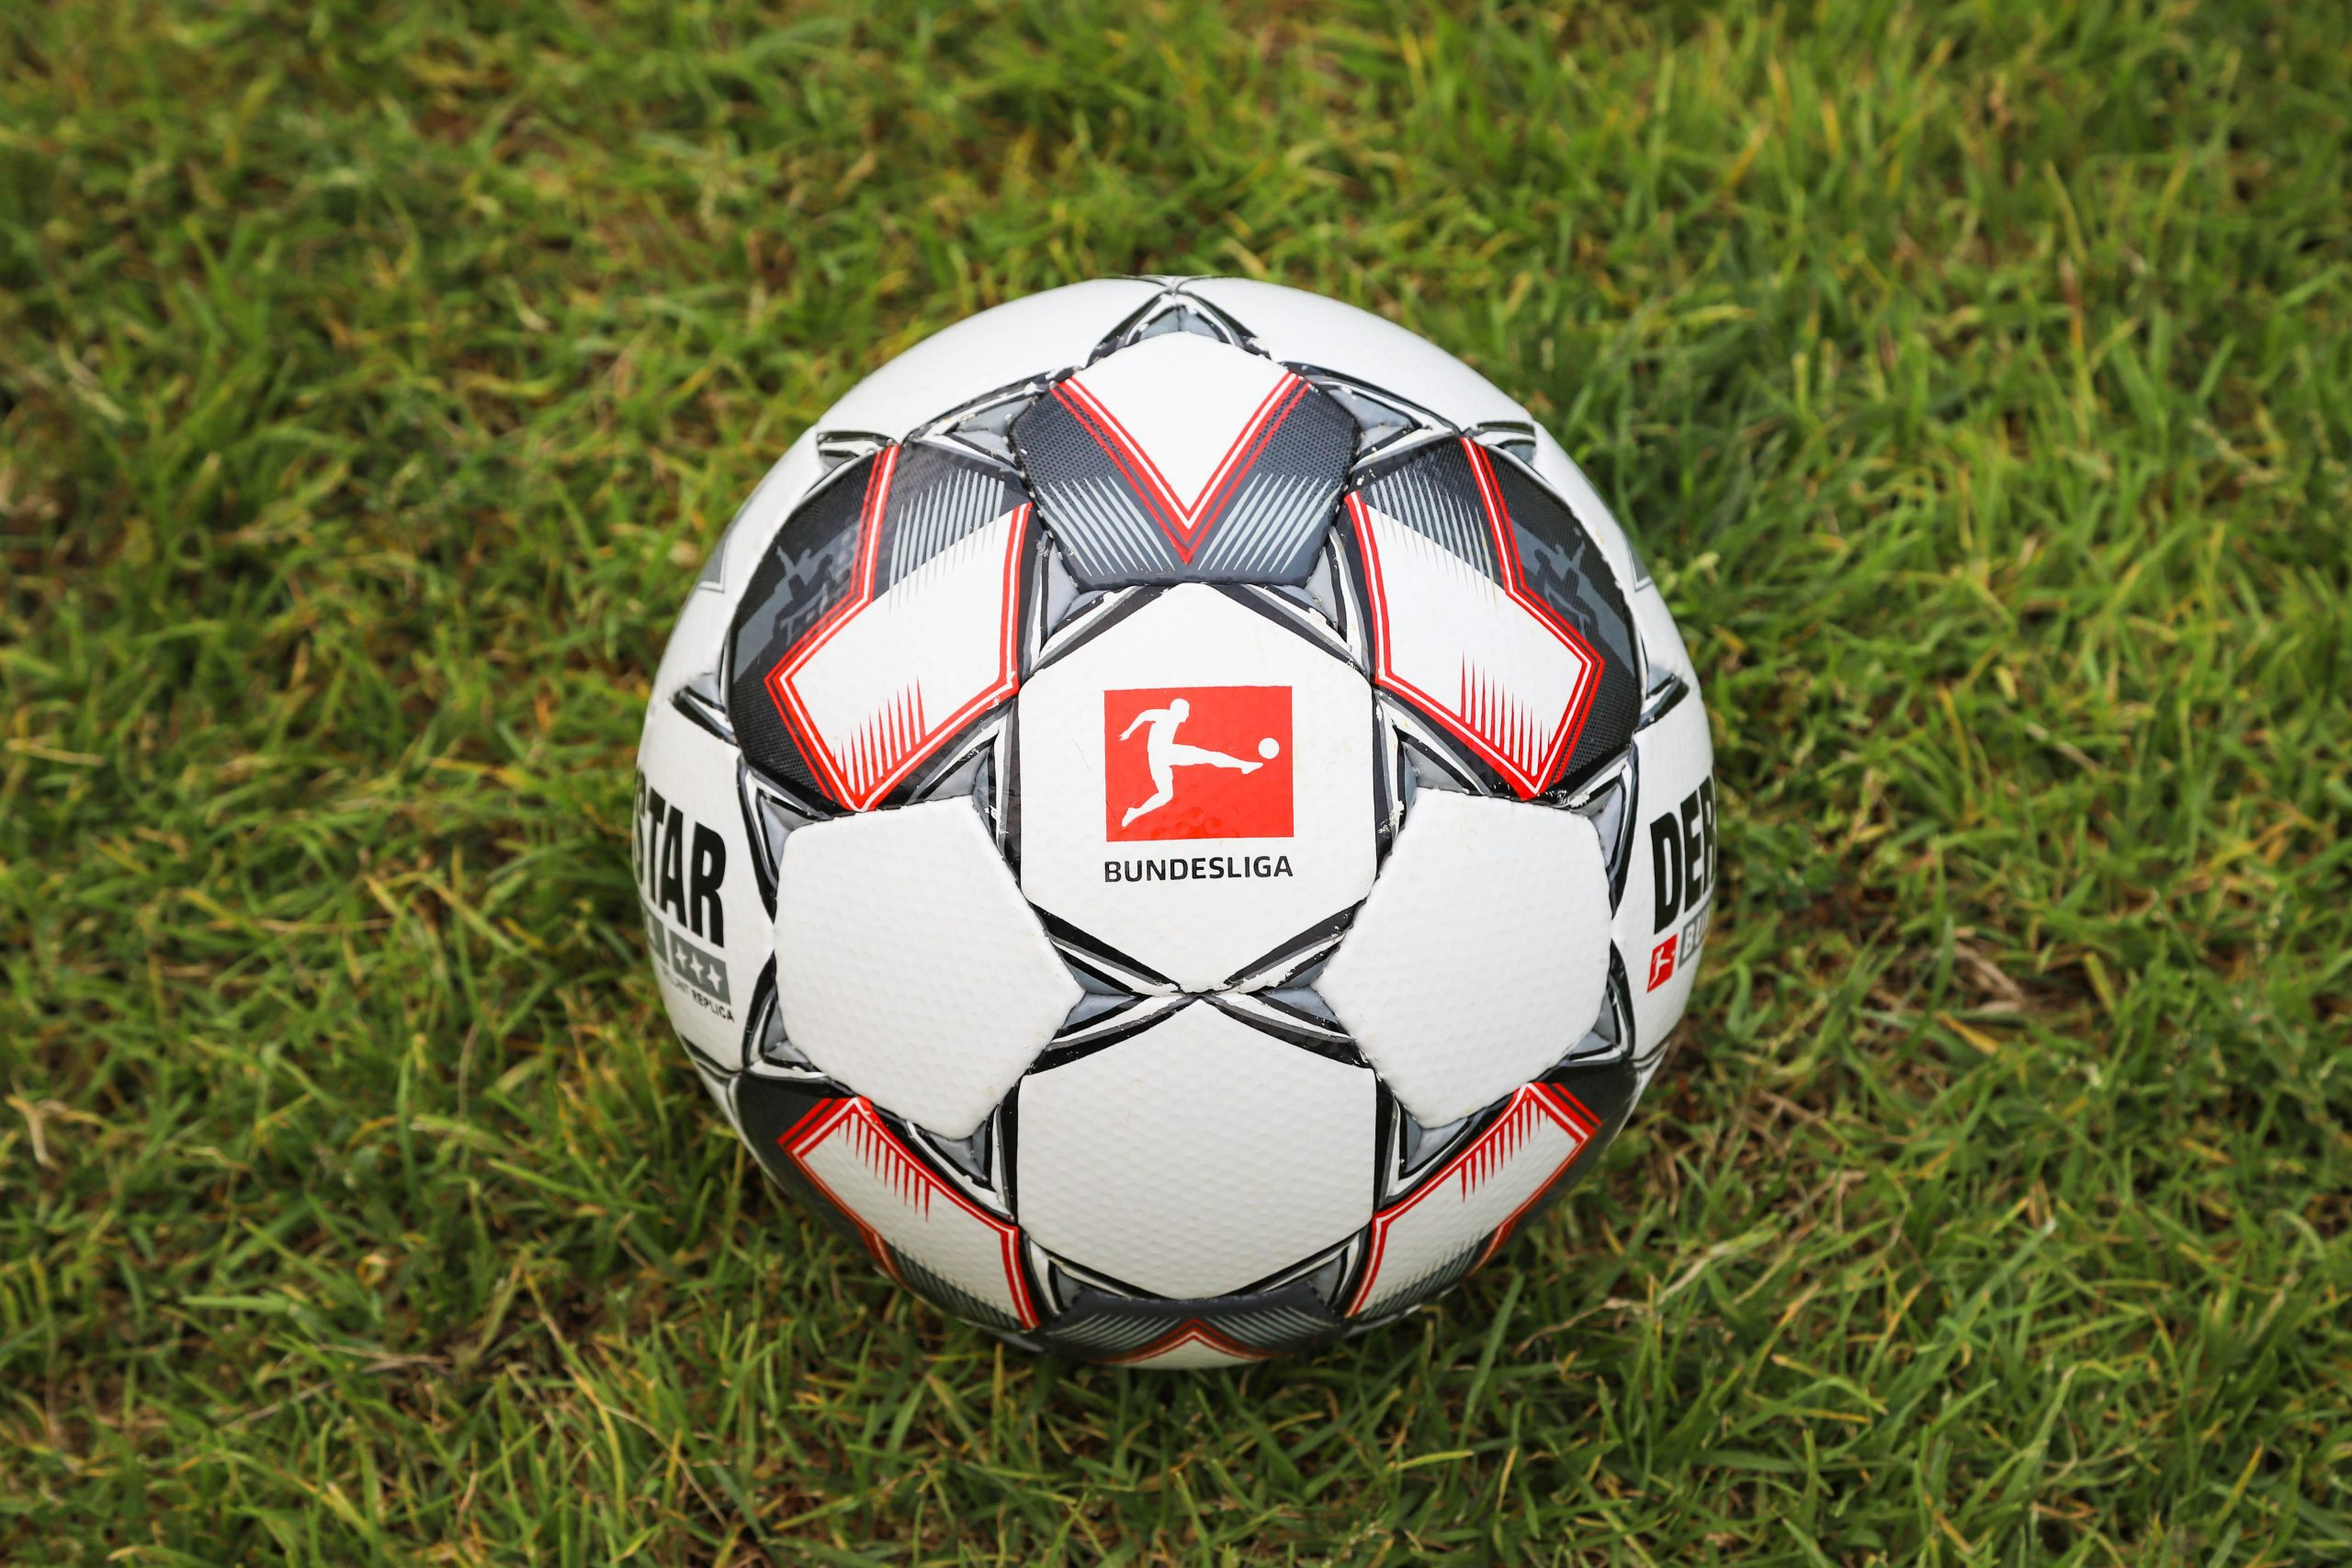 Sorare becomes the official partner of the 1st and 2nd Bundesliga